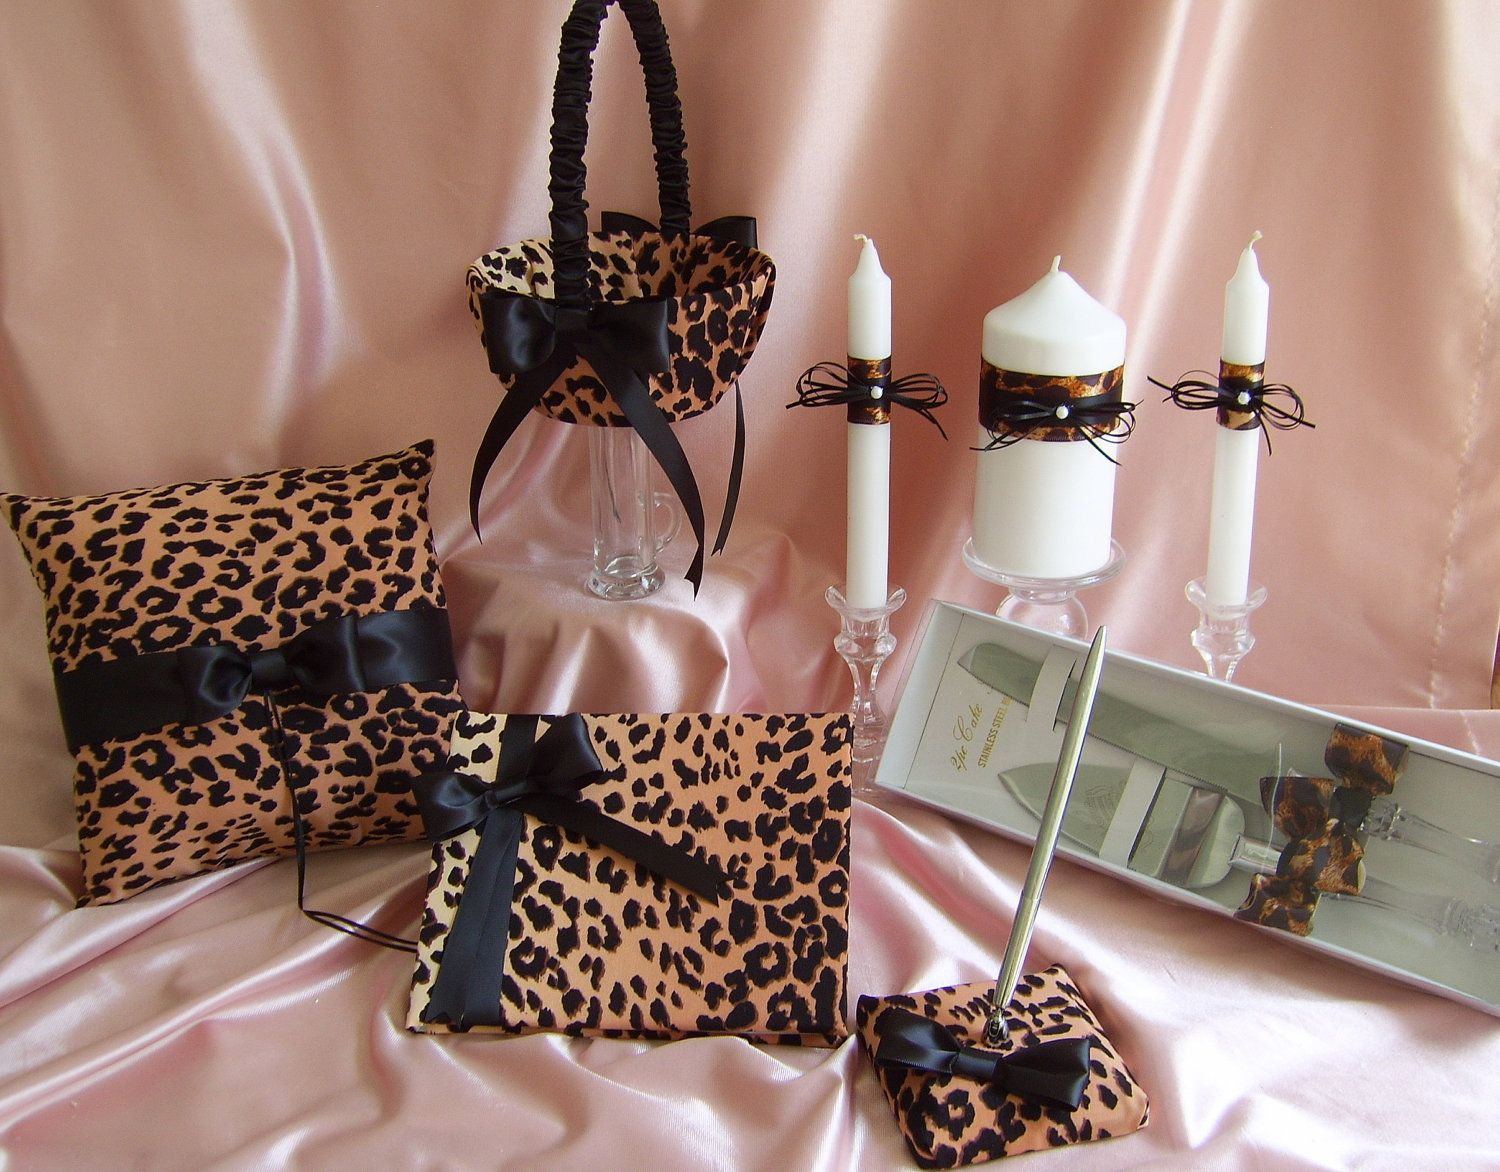 Leopard Print Bedroom Accessories 17 Best Images About My Leopard Print Dream W E D D I N G On